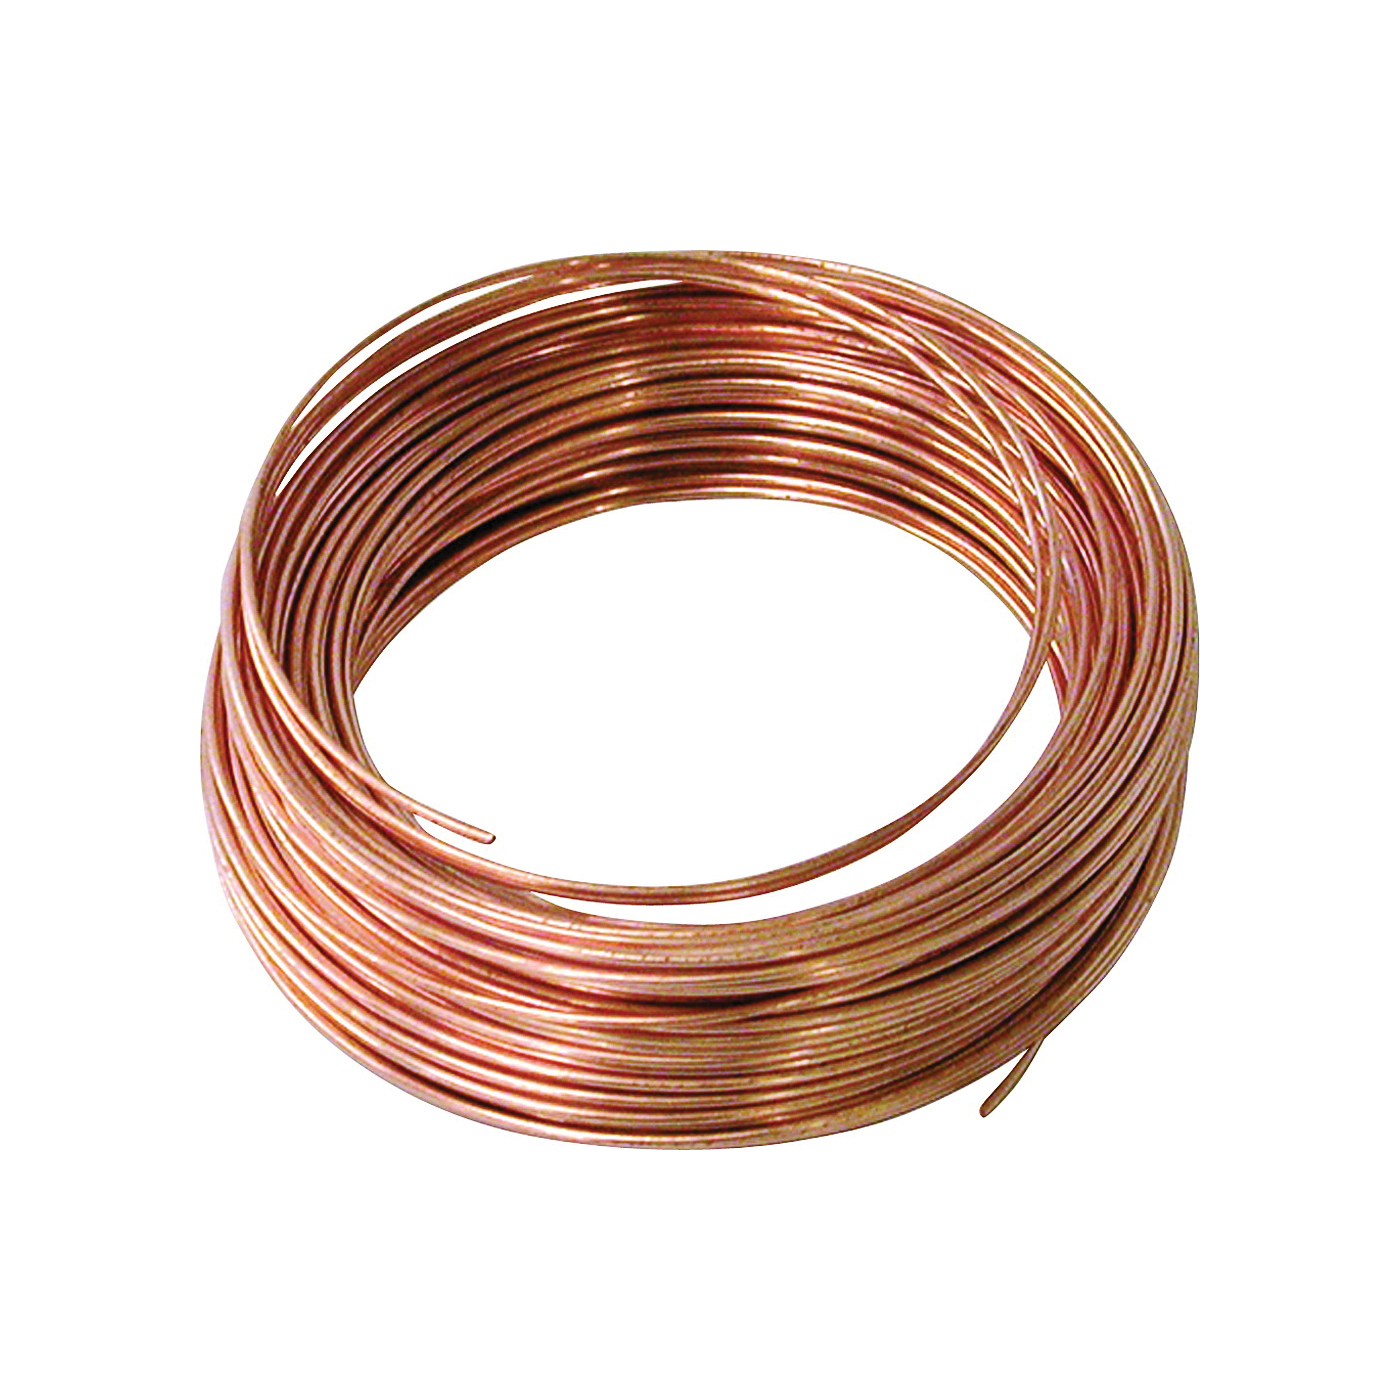 Picture of HILLMAN 50162 Utility Wire, 50 ft L, 20 Gauge, Copper